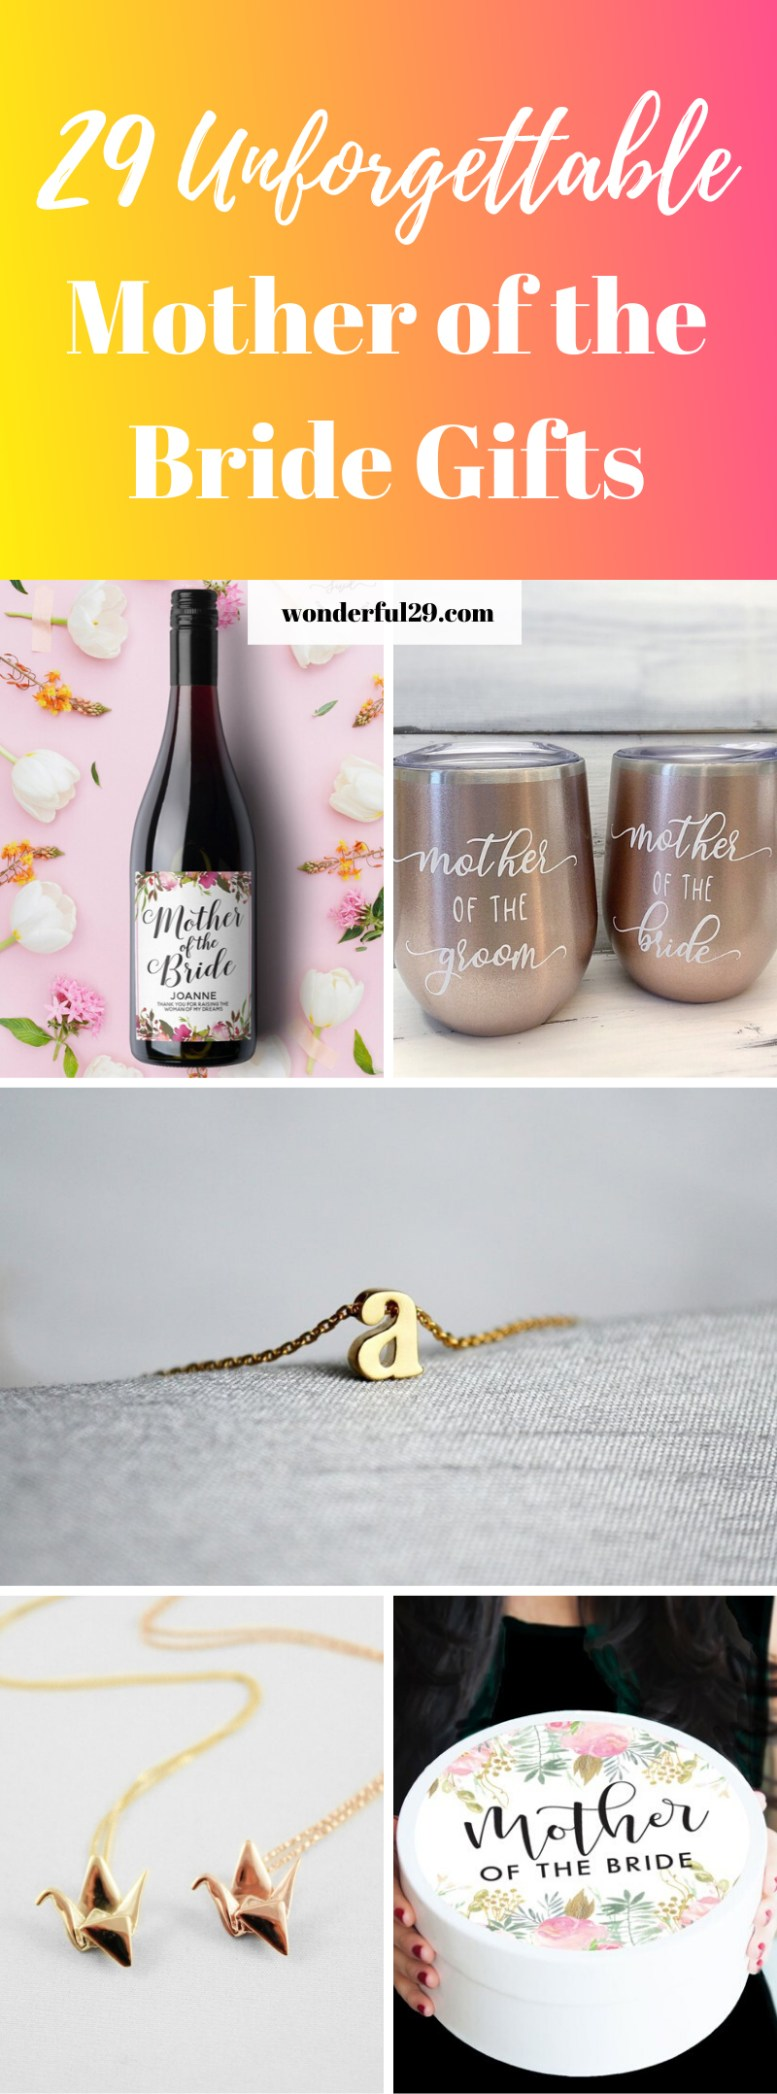 Mother of the Bride Gift Ideas